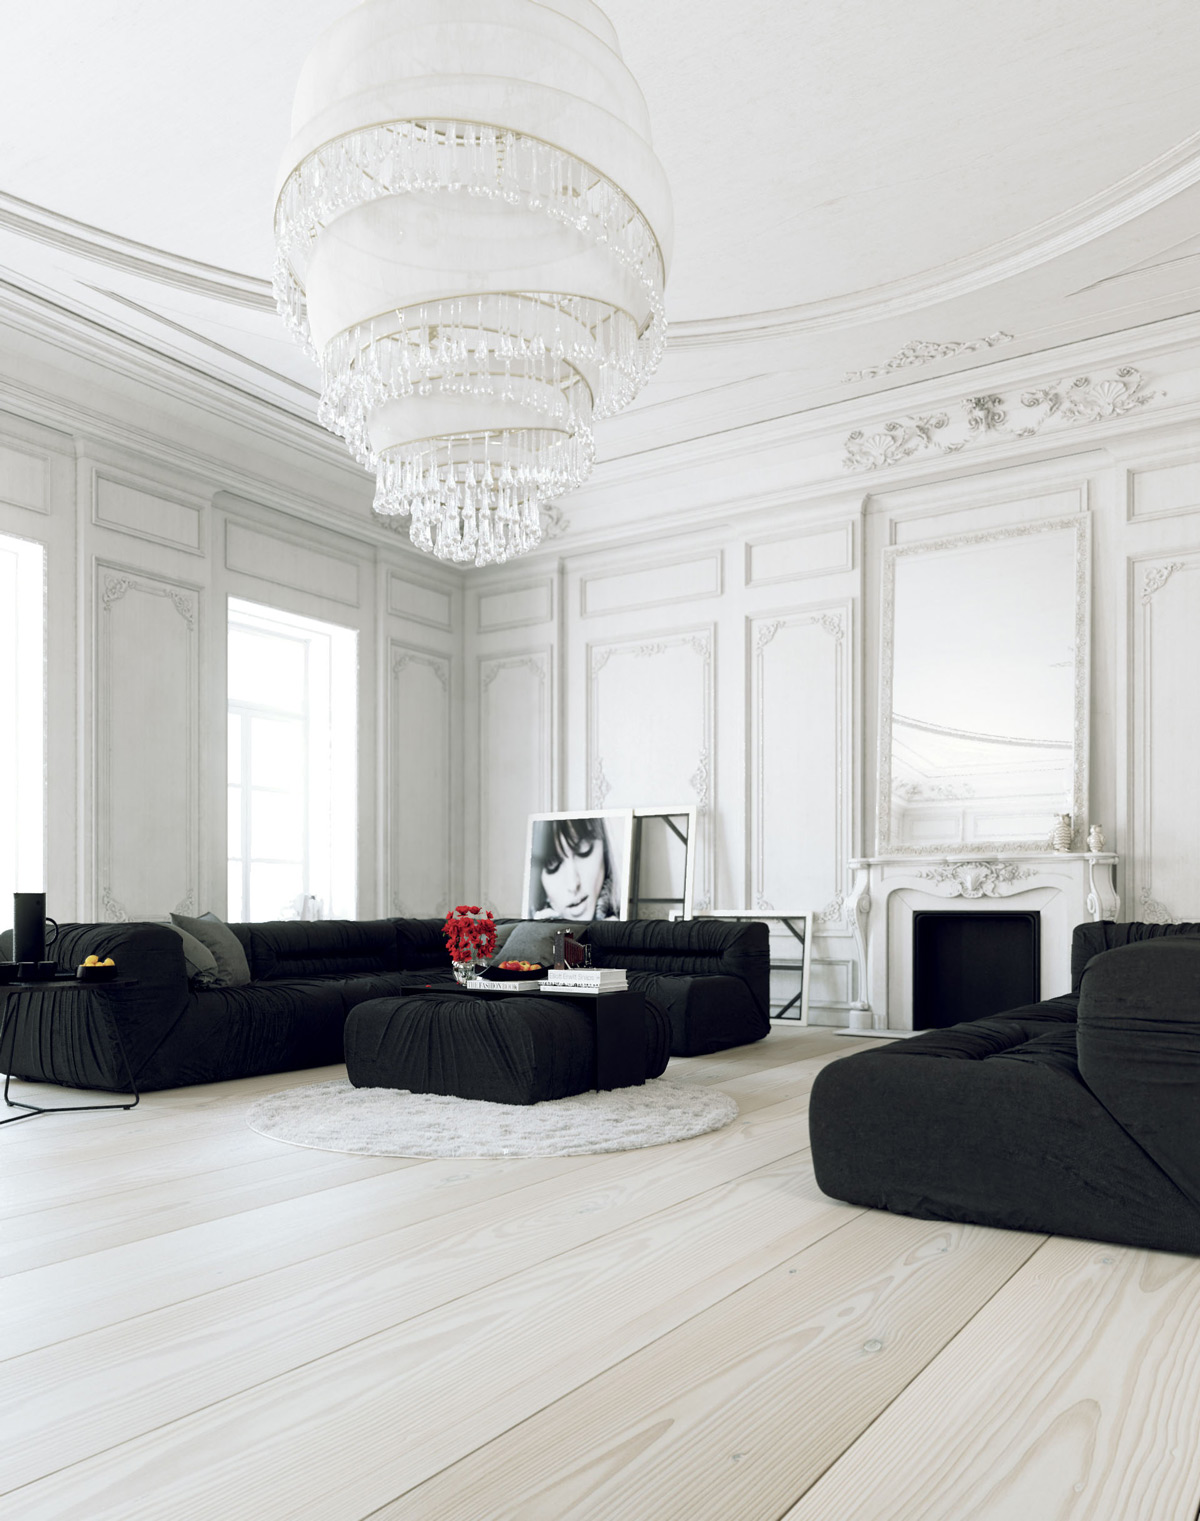 black-living-room-furniture-large-chandelier-model-portrait-large-mirror-fireplace-white-wooden-floors-roses